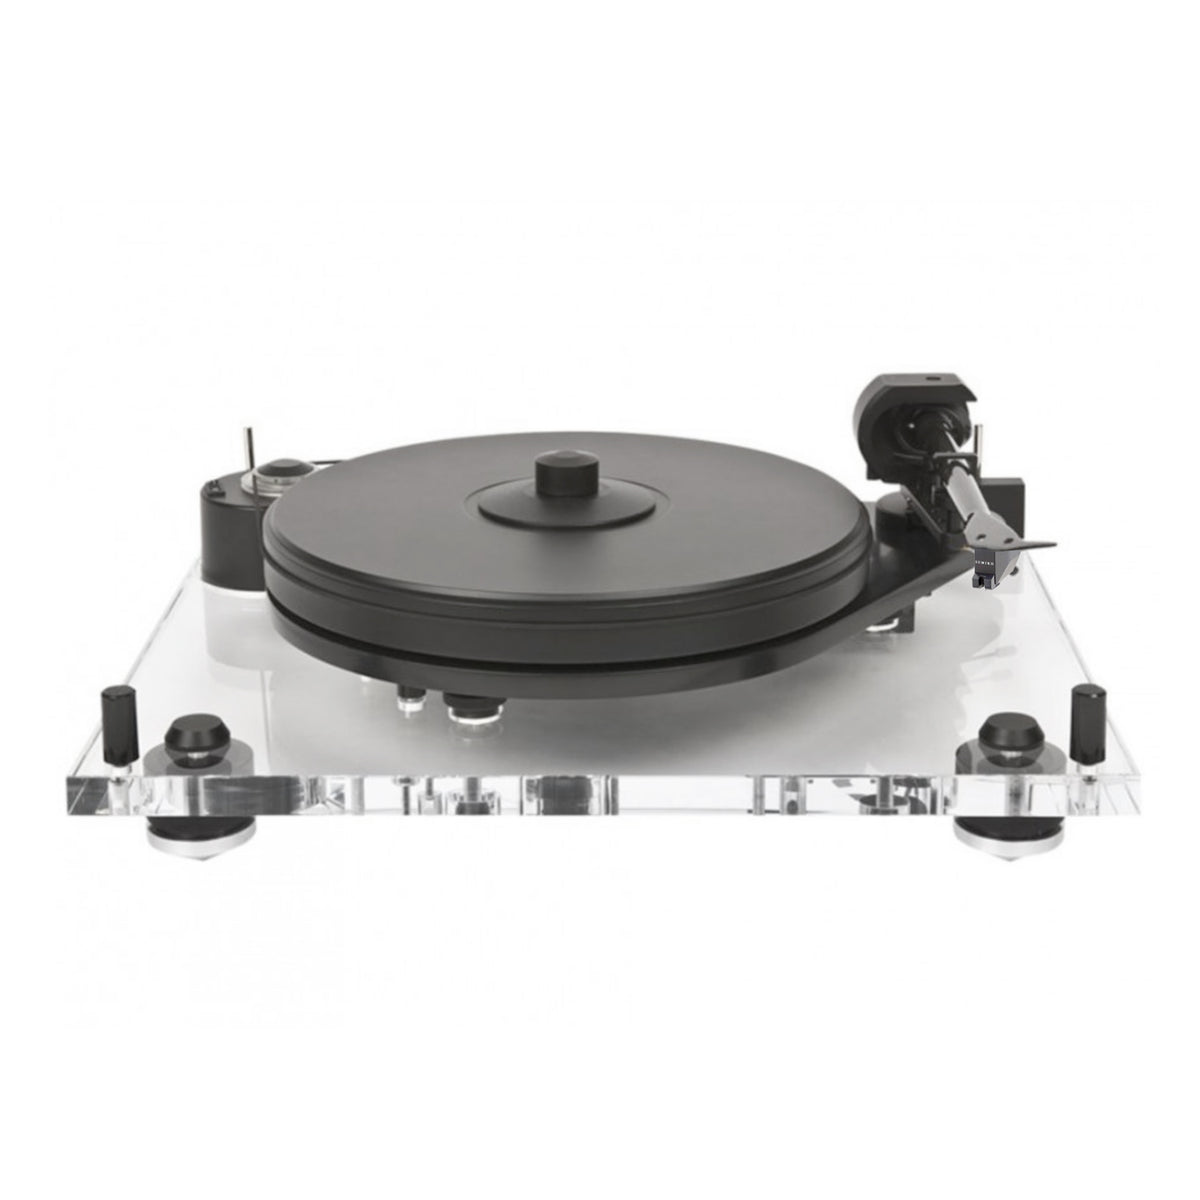 Pro-Ject: 6Perspex SB Acrylic Turntable w/Sumiko Amethyst (Installed)